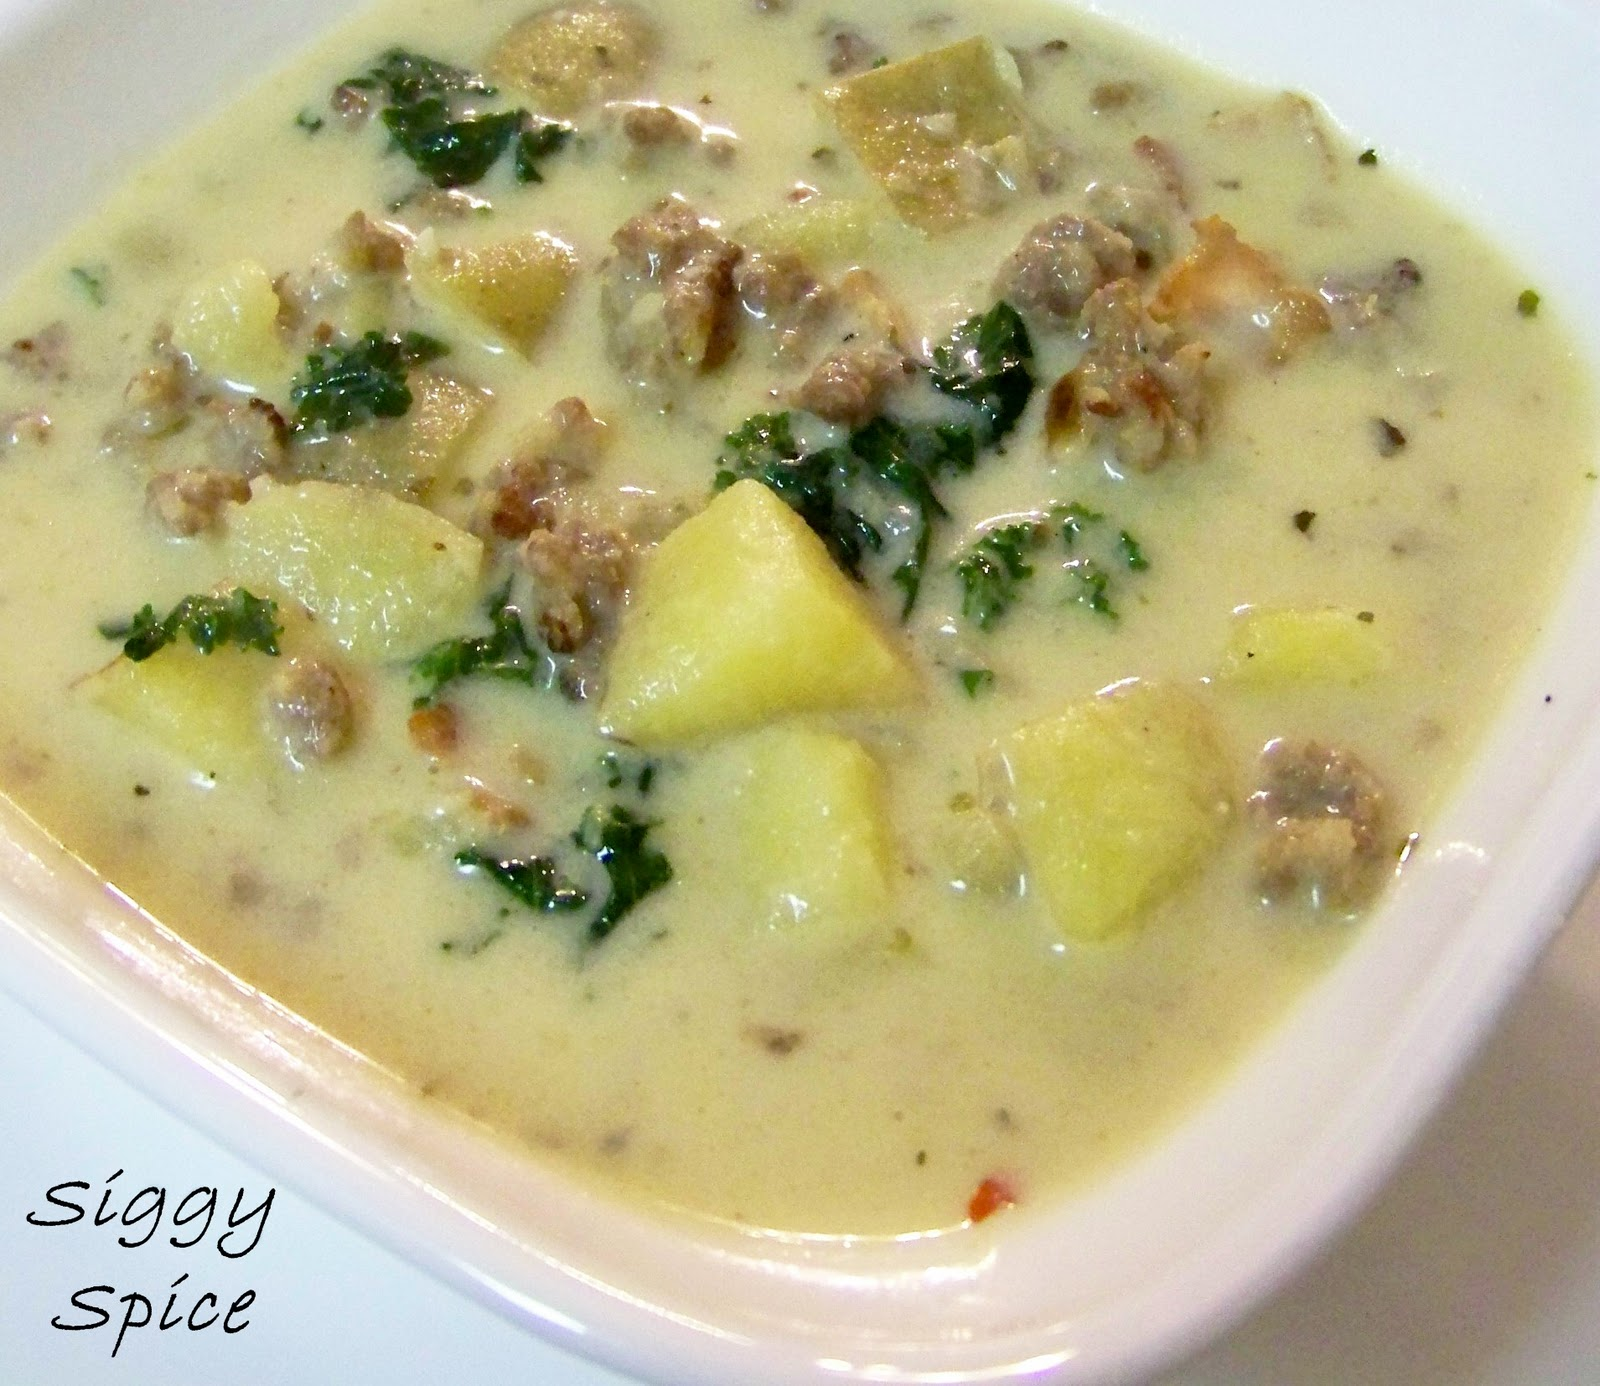 Siggy Spice: Better Than Olive Garden's Zuppa Toscana